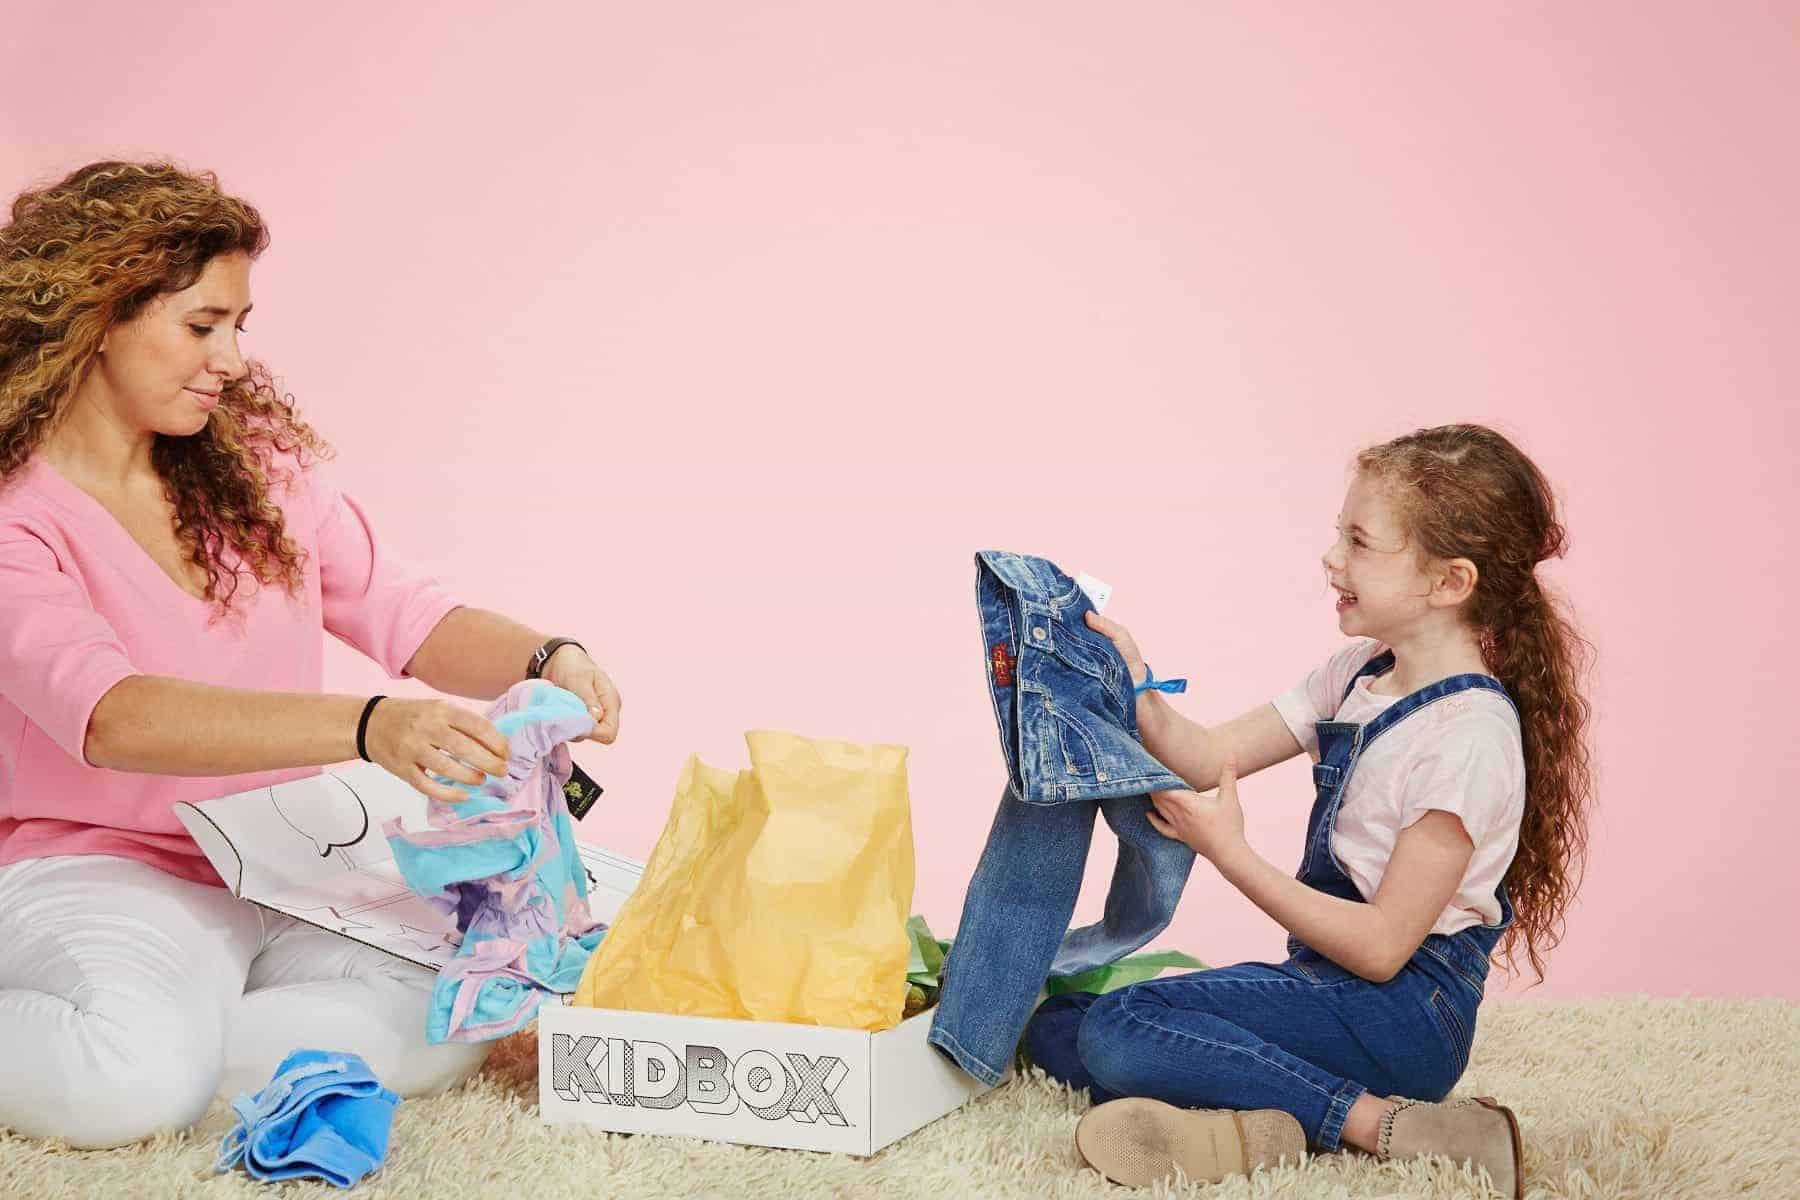 KIDBOX Kid's Fashion Subscription Box